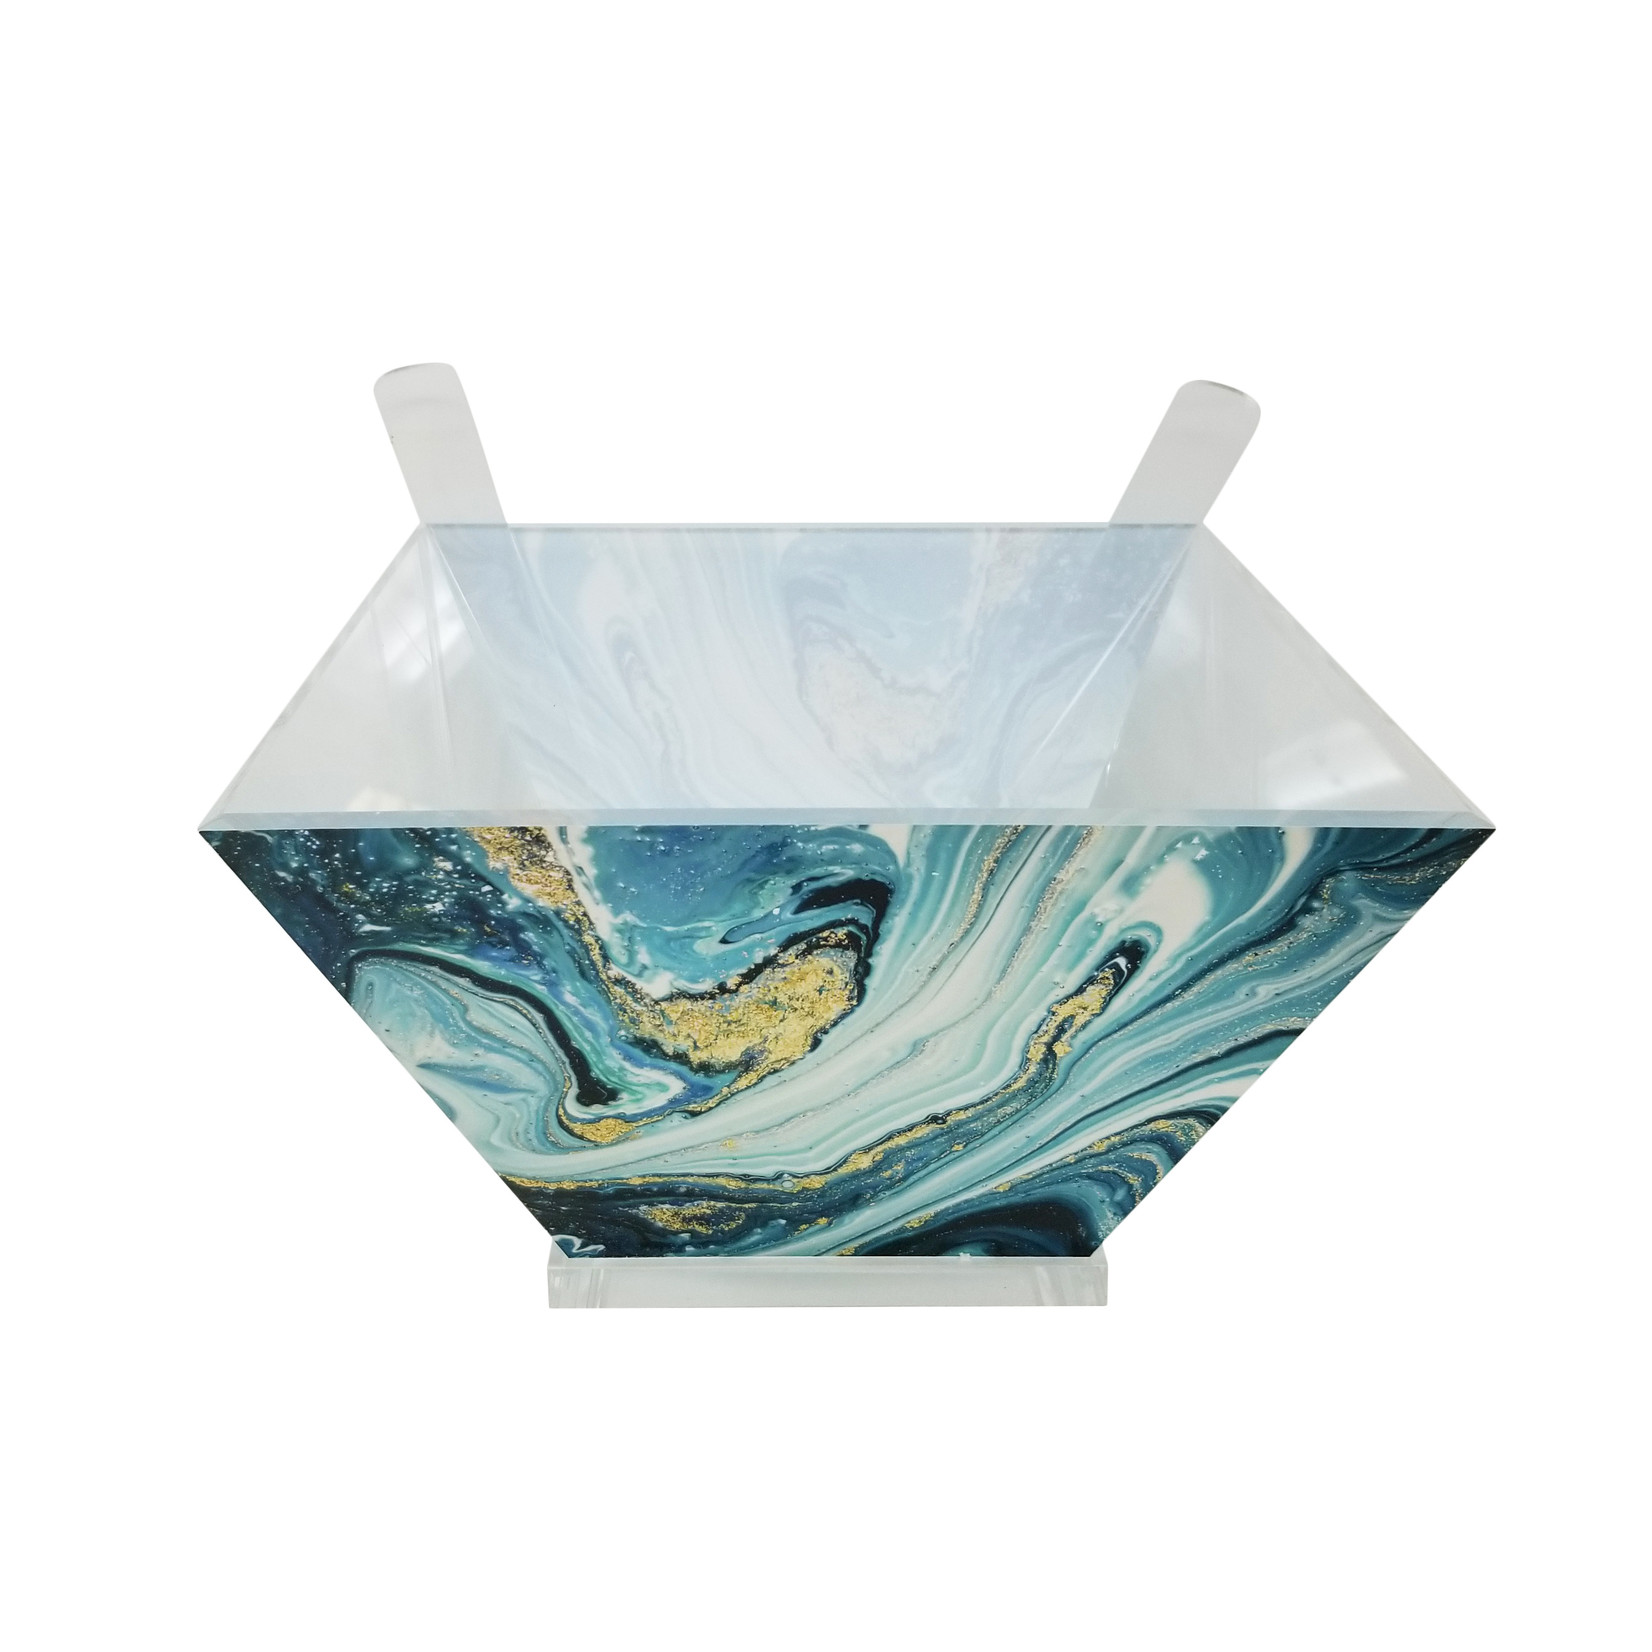 Presented Touch Acrylic Salad Bowl with Servers Blue Marble